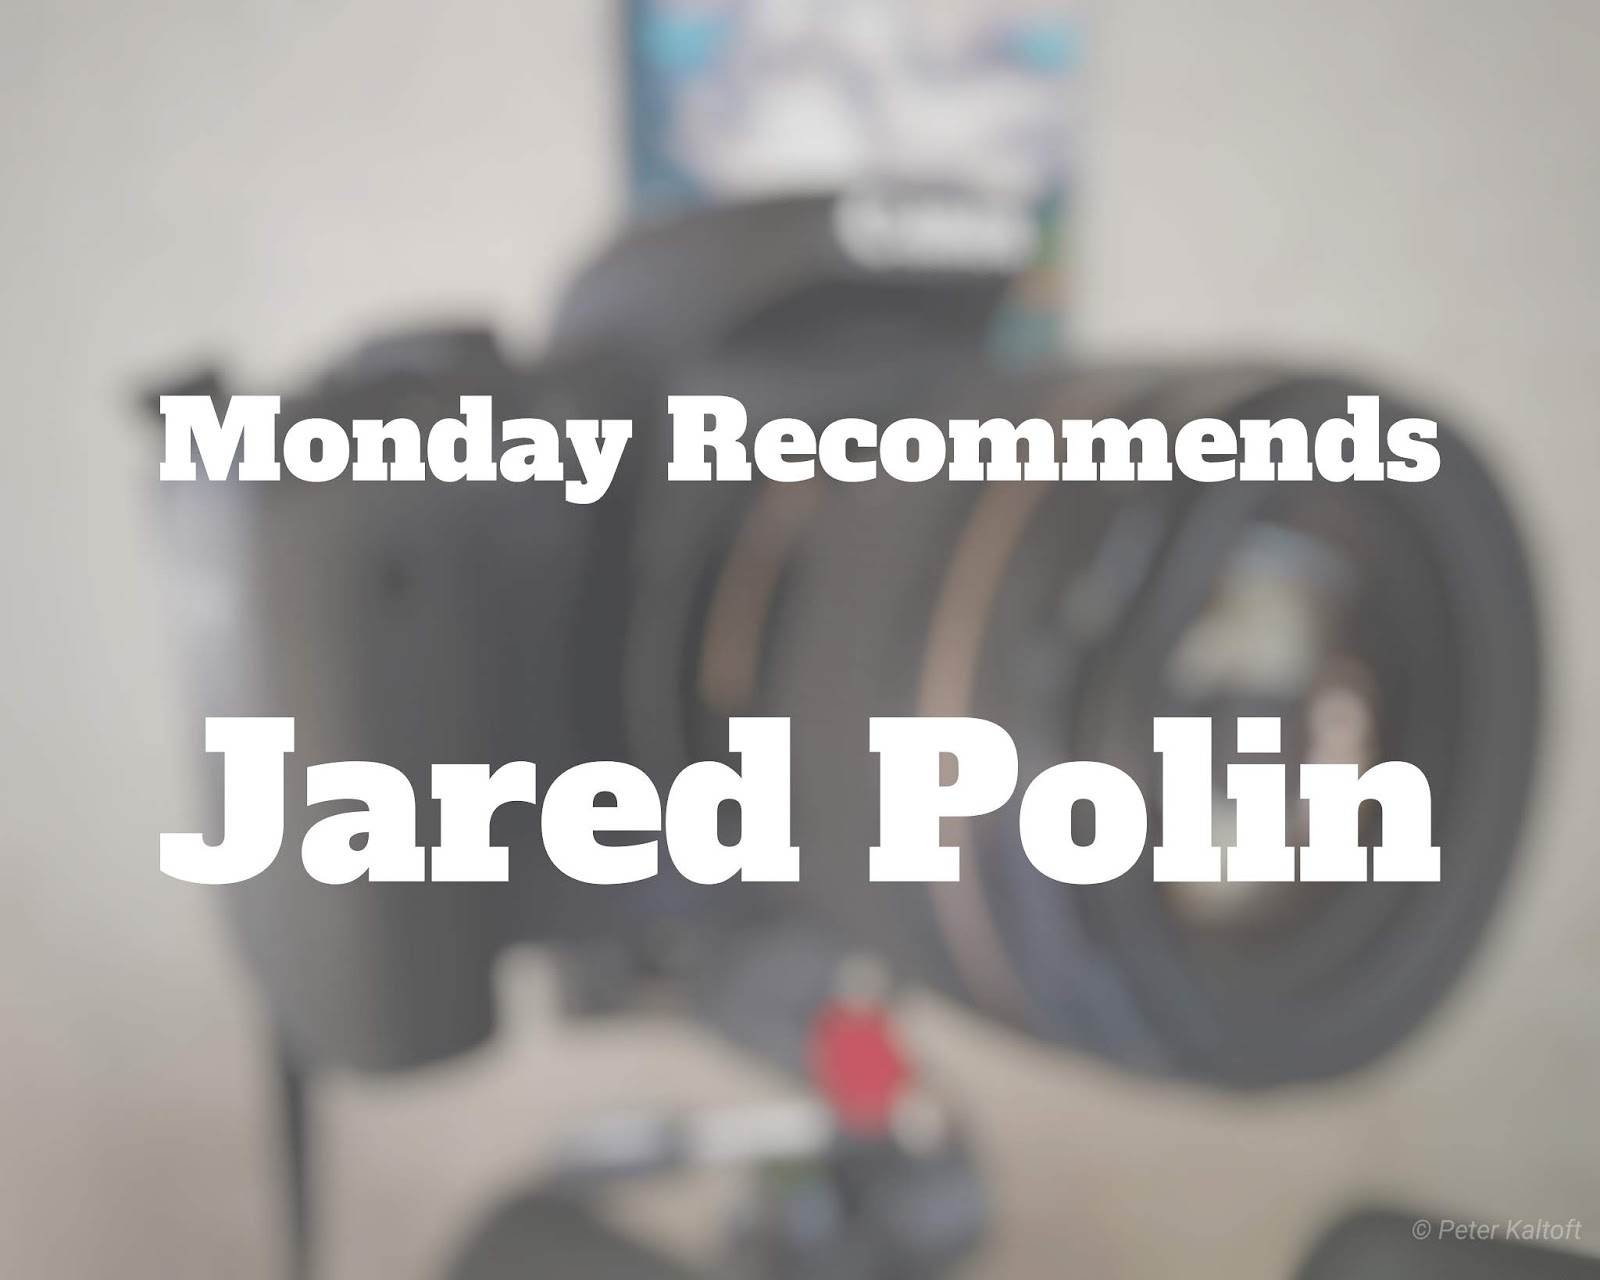 Monday recommendation, this week we are recommending Jared Polin